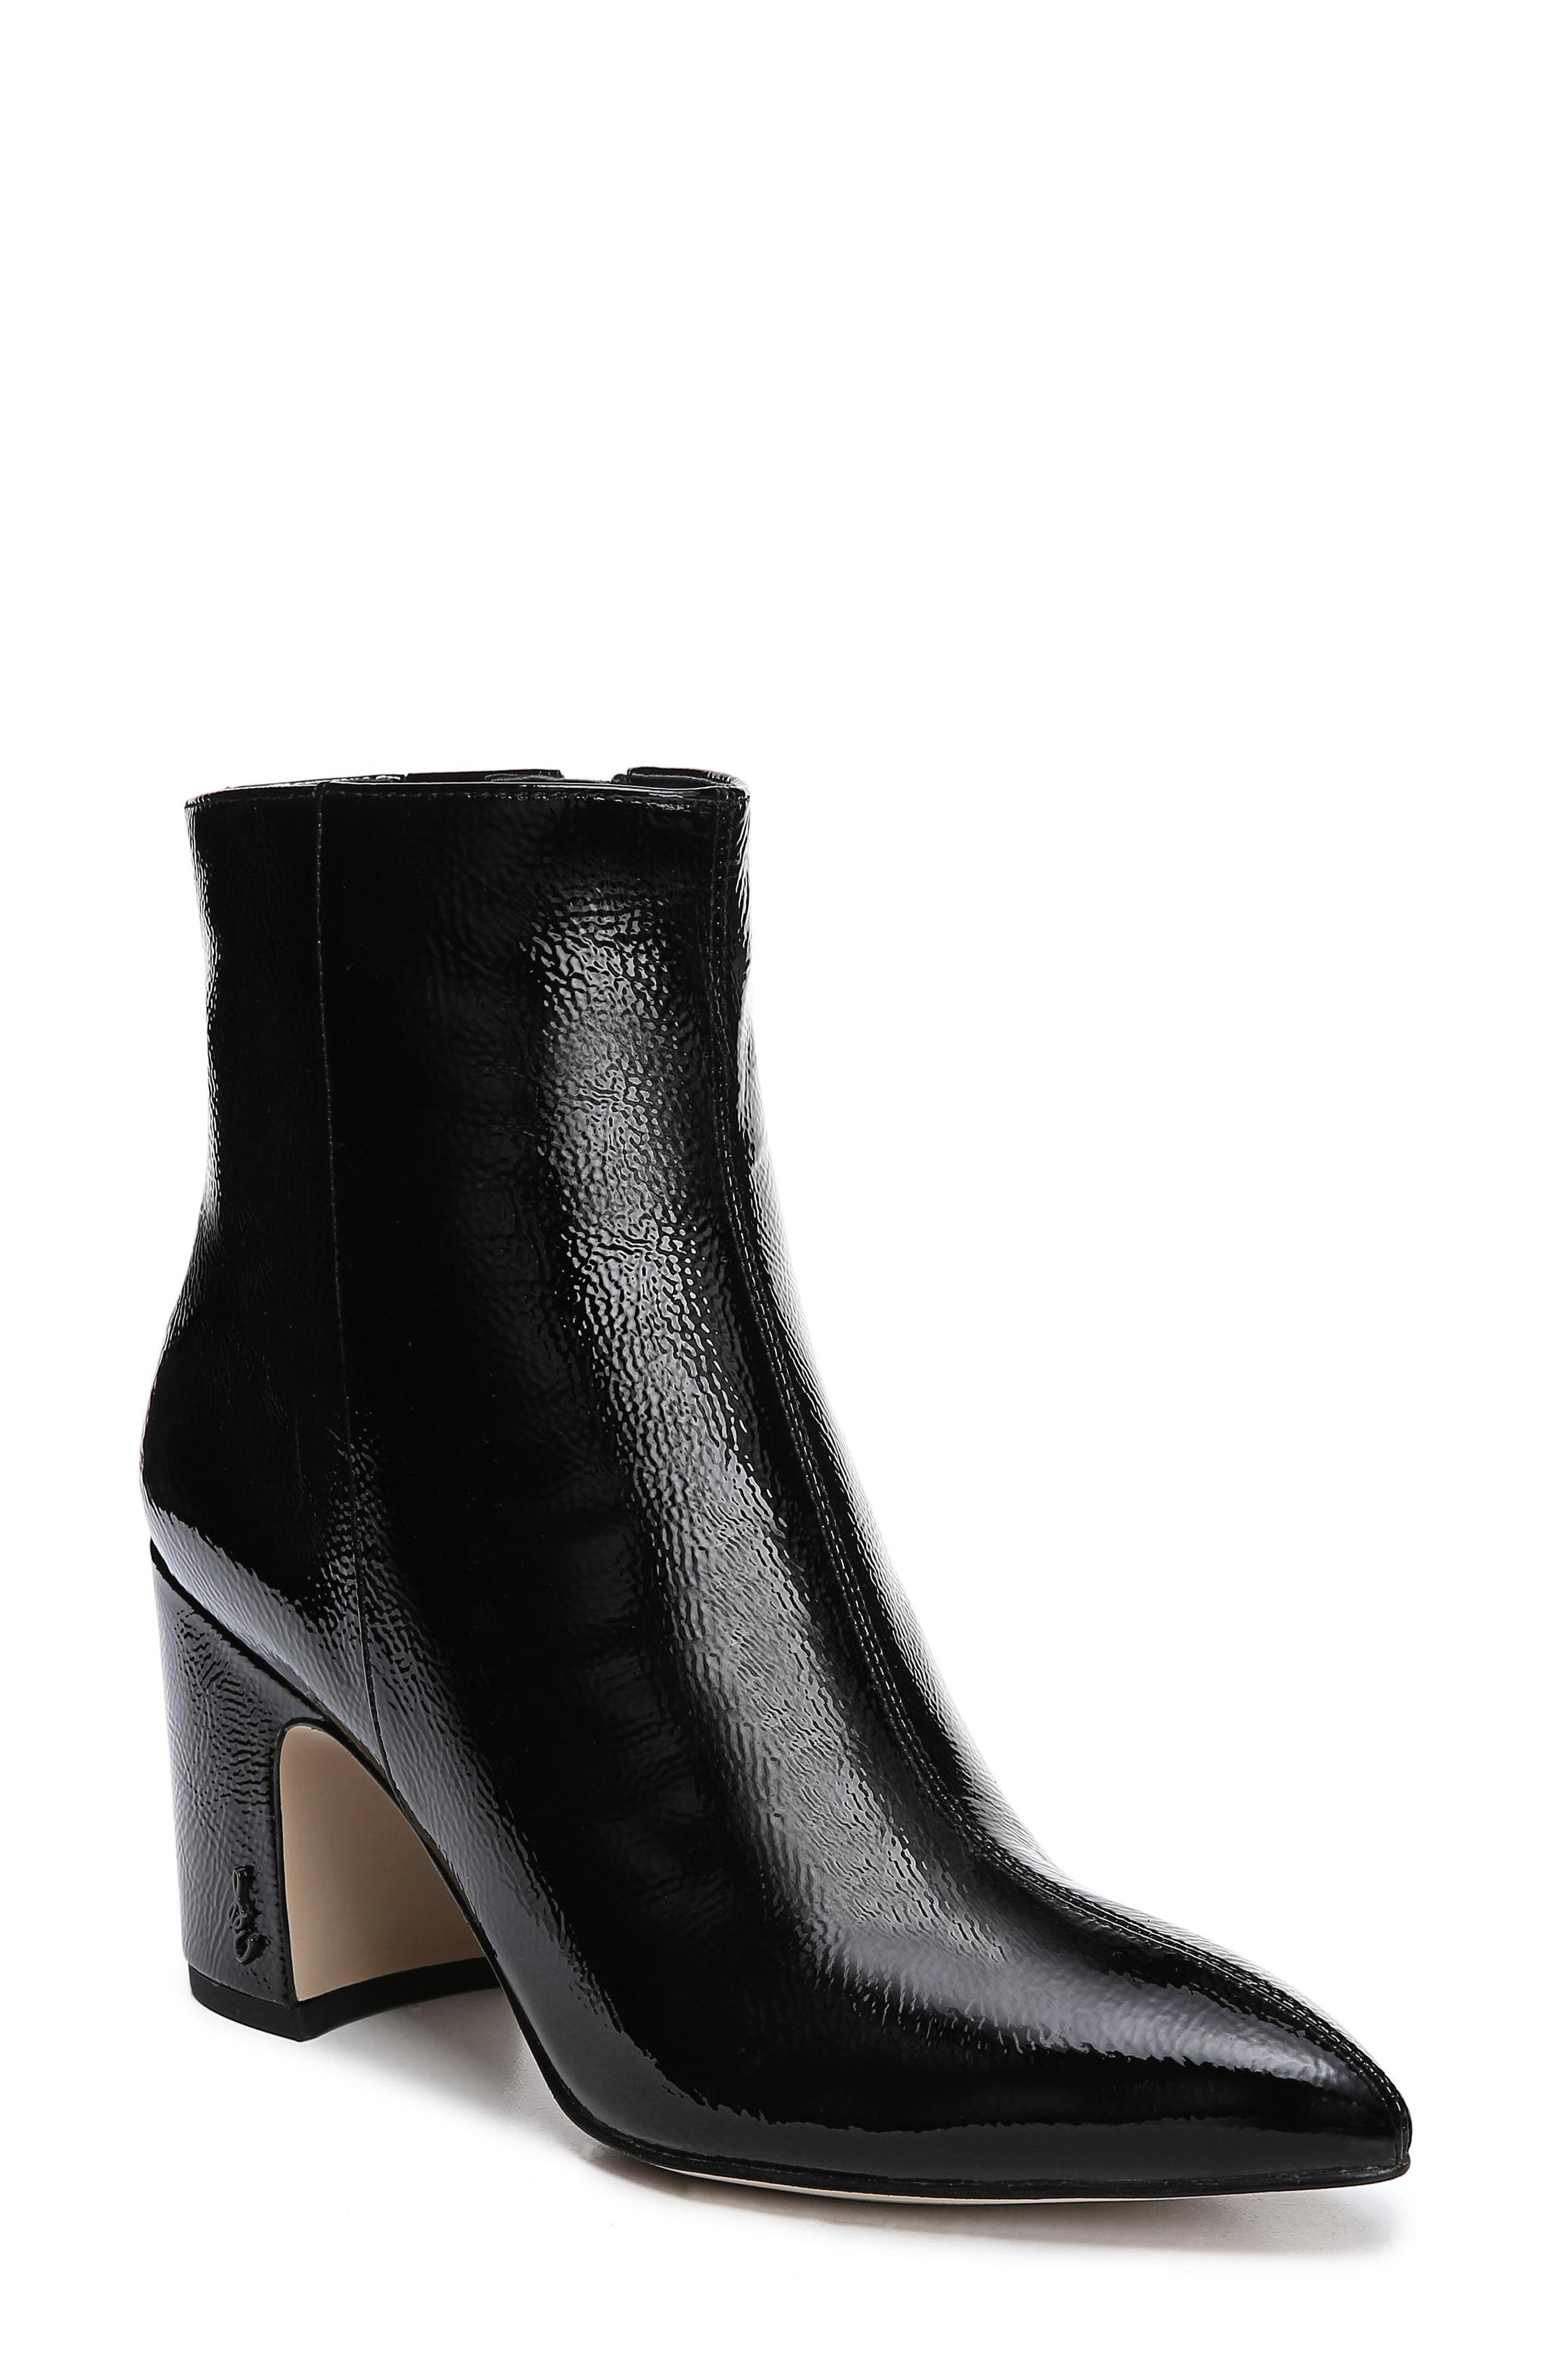 Sam Edelman Hilty Genuine Calf Hair Bootie- Black